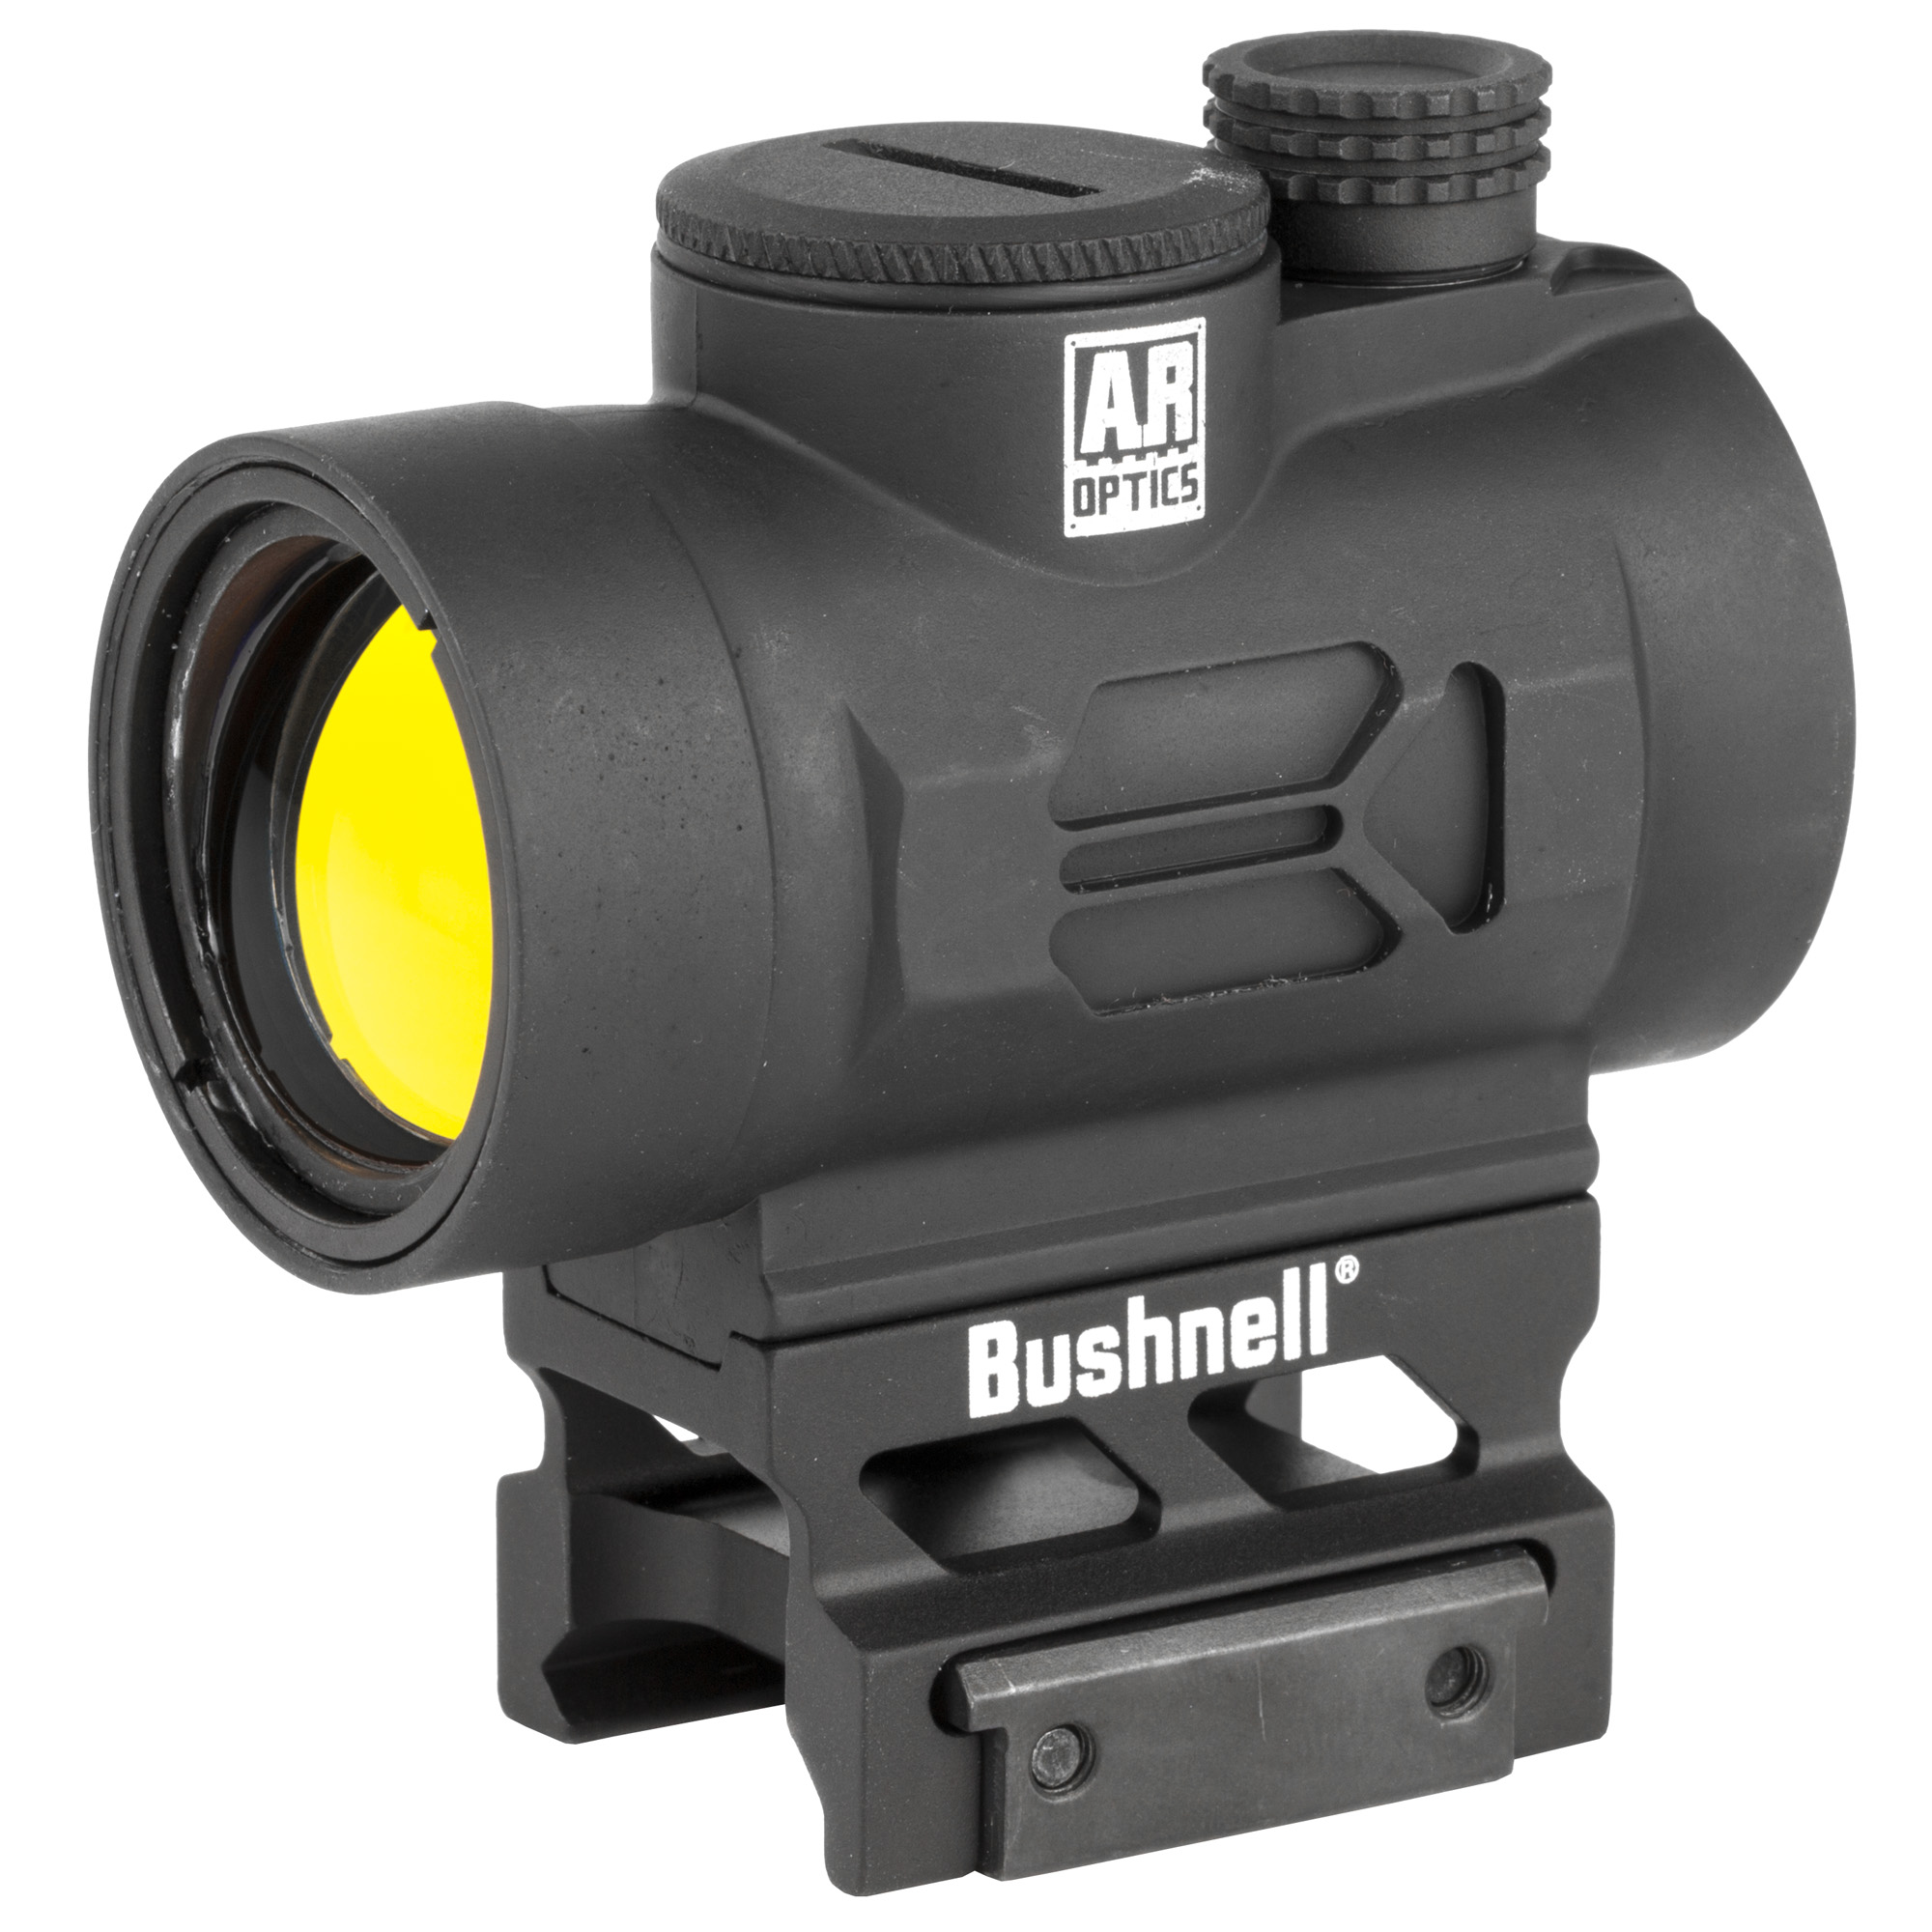 """The Bushnell AR Optics TRS-26 Red Dot goes beyond its historic predecessor with improvements in several key areas. The TRS-26 is powered by a long-lasting battery that sets the industry standard with more than 50""""000 hours of battery life. It delivers a brighter"""" crisper 3-MOA dot with push-button operation in a compact package. The Bushnell AR Optics TRS-26 is the standard for multipurpose red dots."""